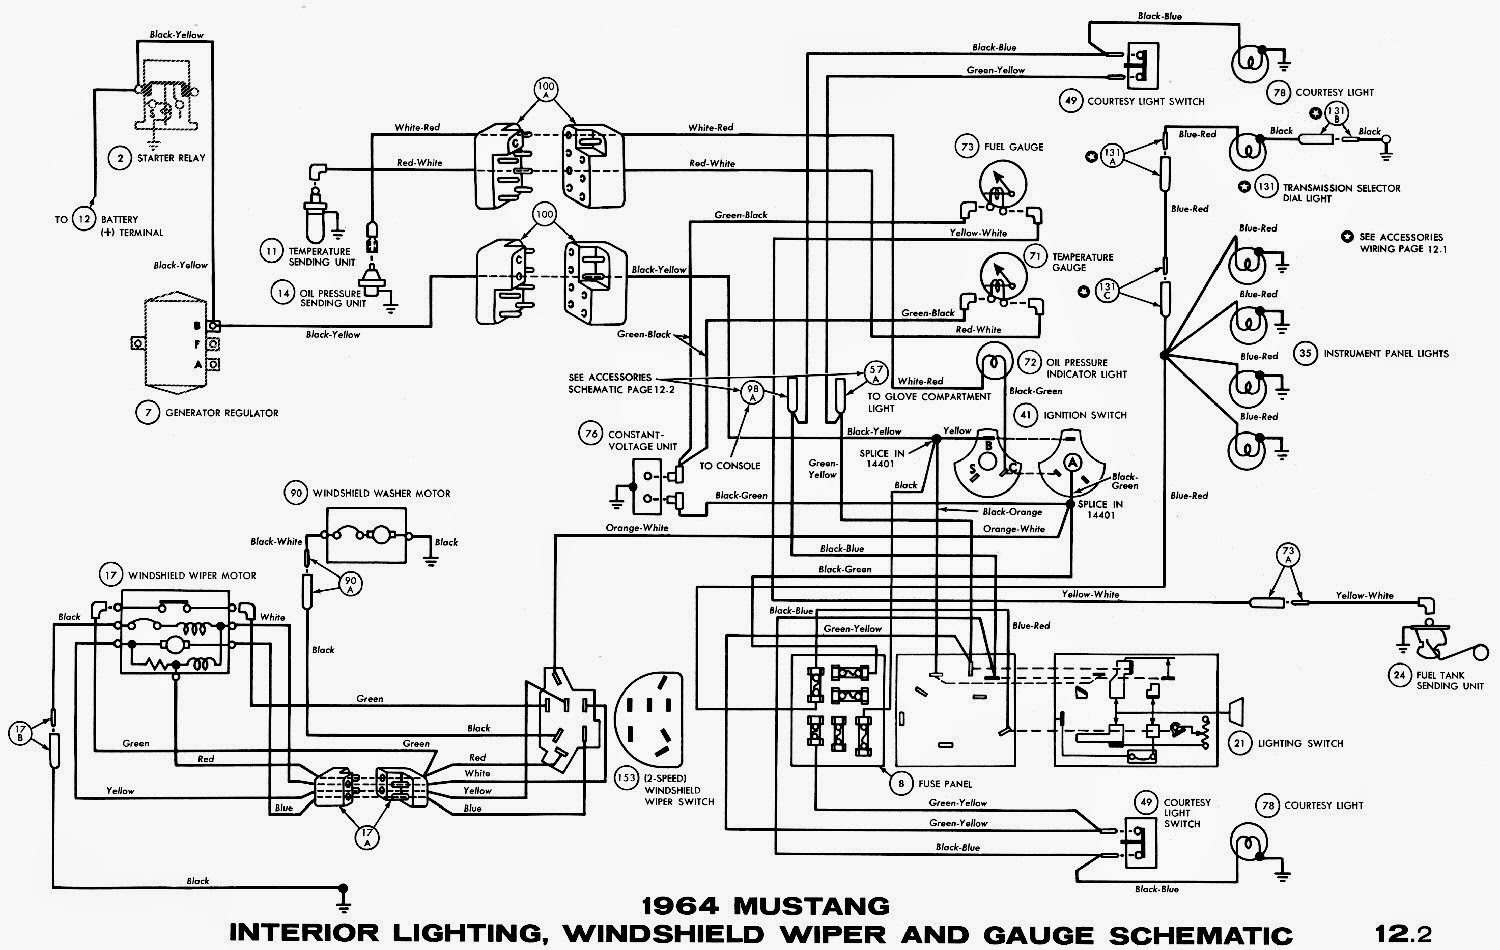 1964 Mustang Wiring Diagrams Schematic | Wiring Diagrams